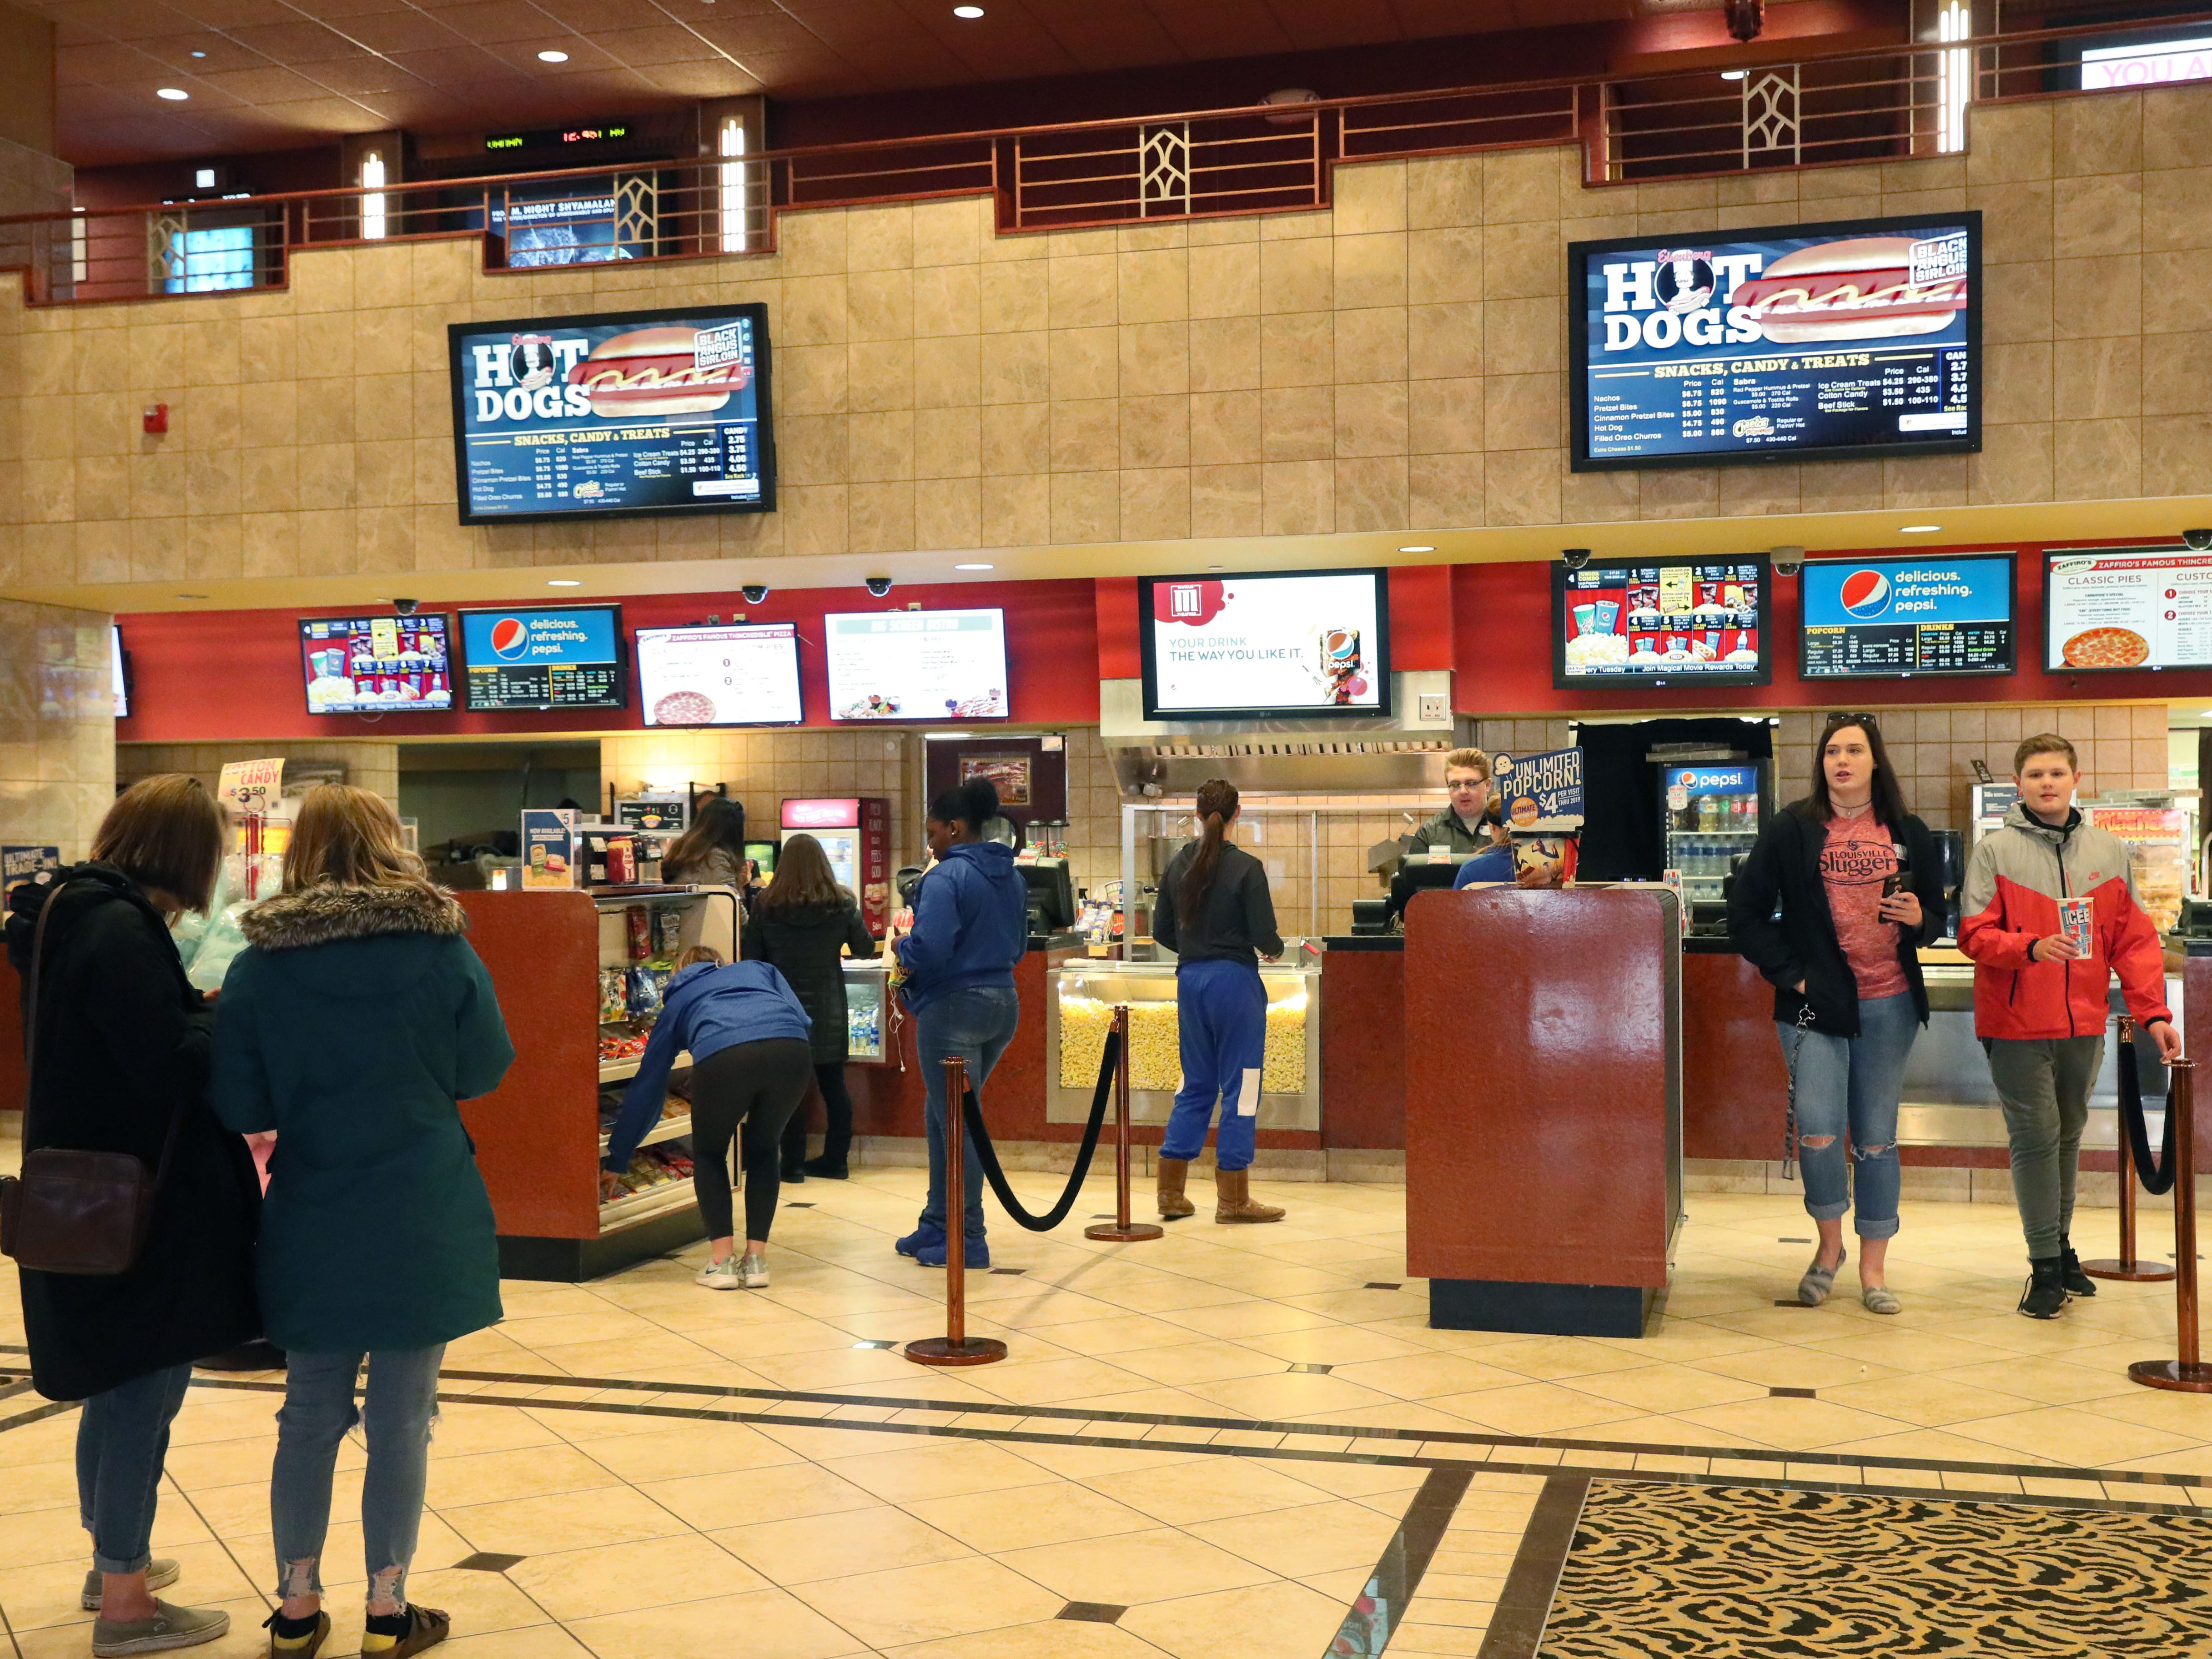 People buy food and drinks before the movie at the Marcus Majestic Cinema.